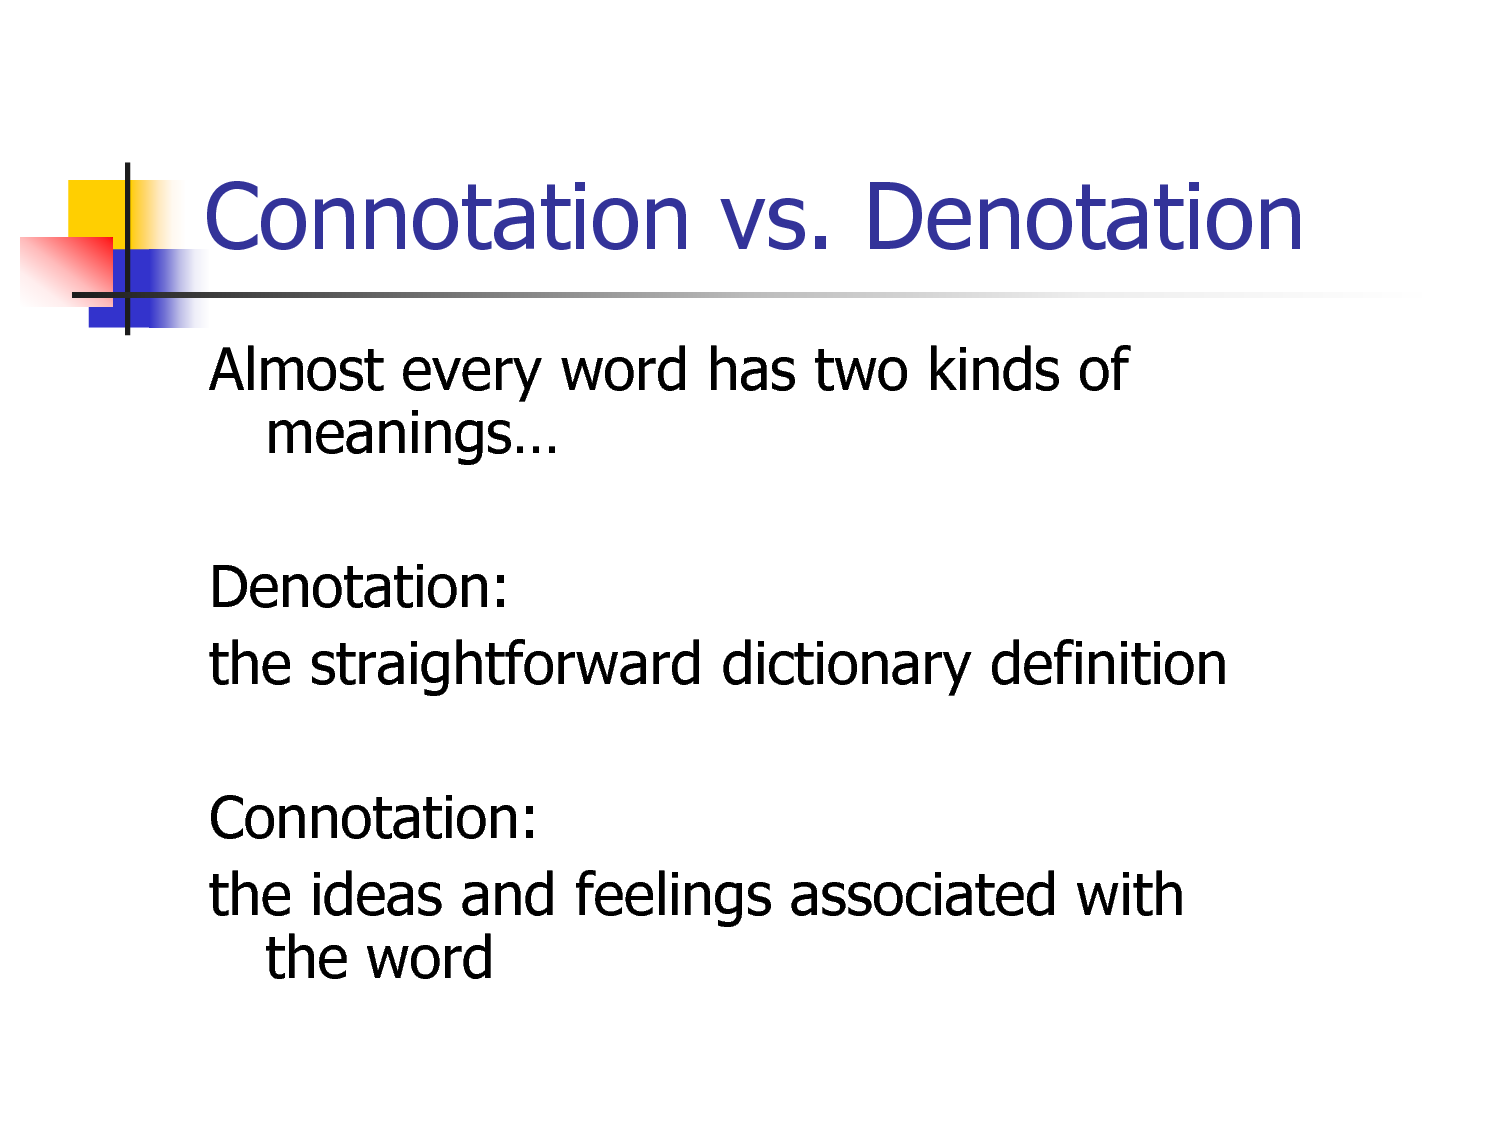 Denotation connotation exercises middle school